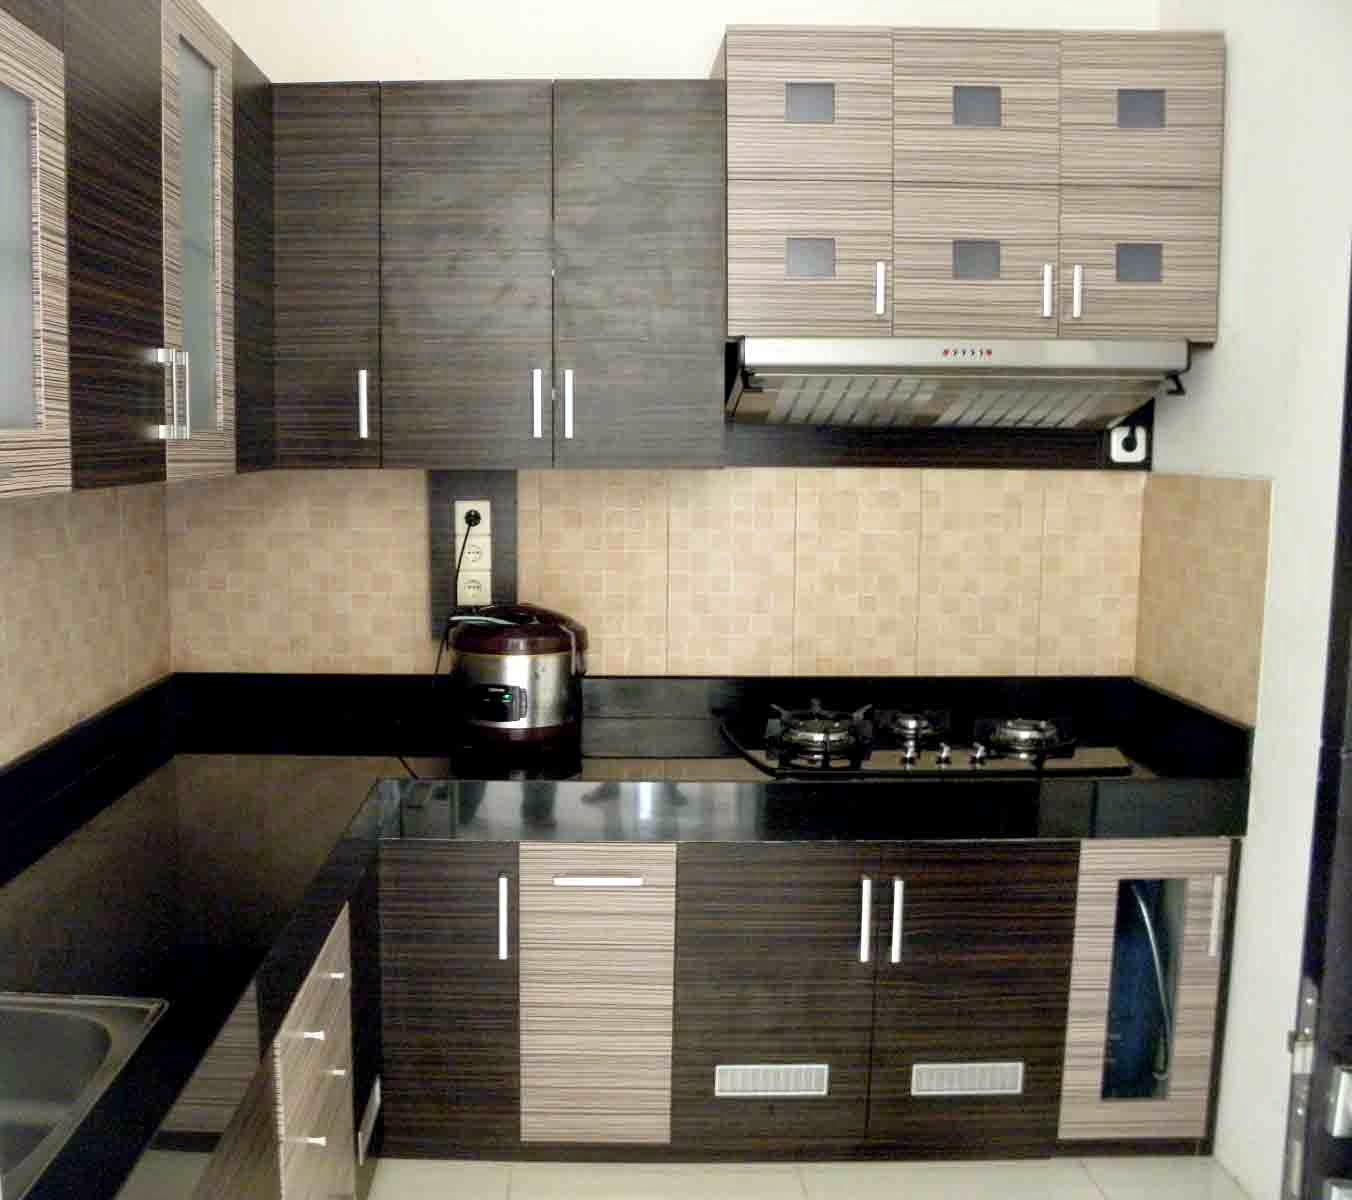 Daftar harga dan model kitchen set minimalis modern for Harga kitchen set minimalis per meter